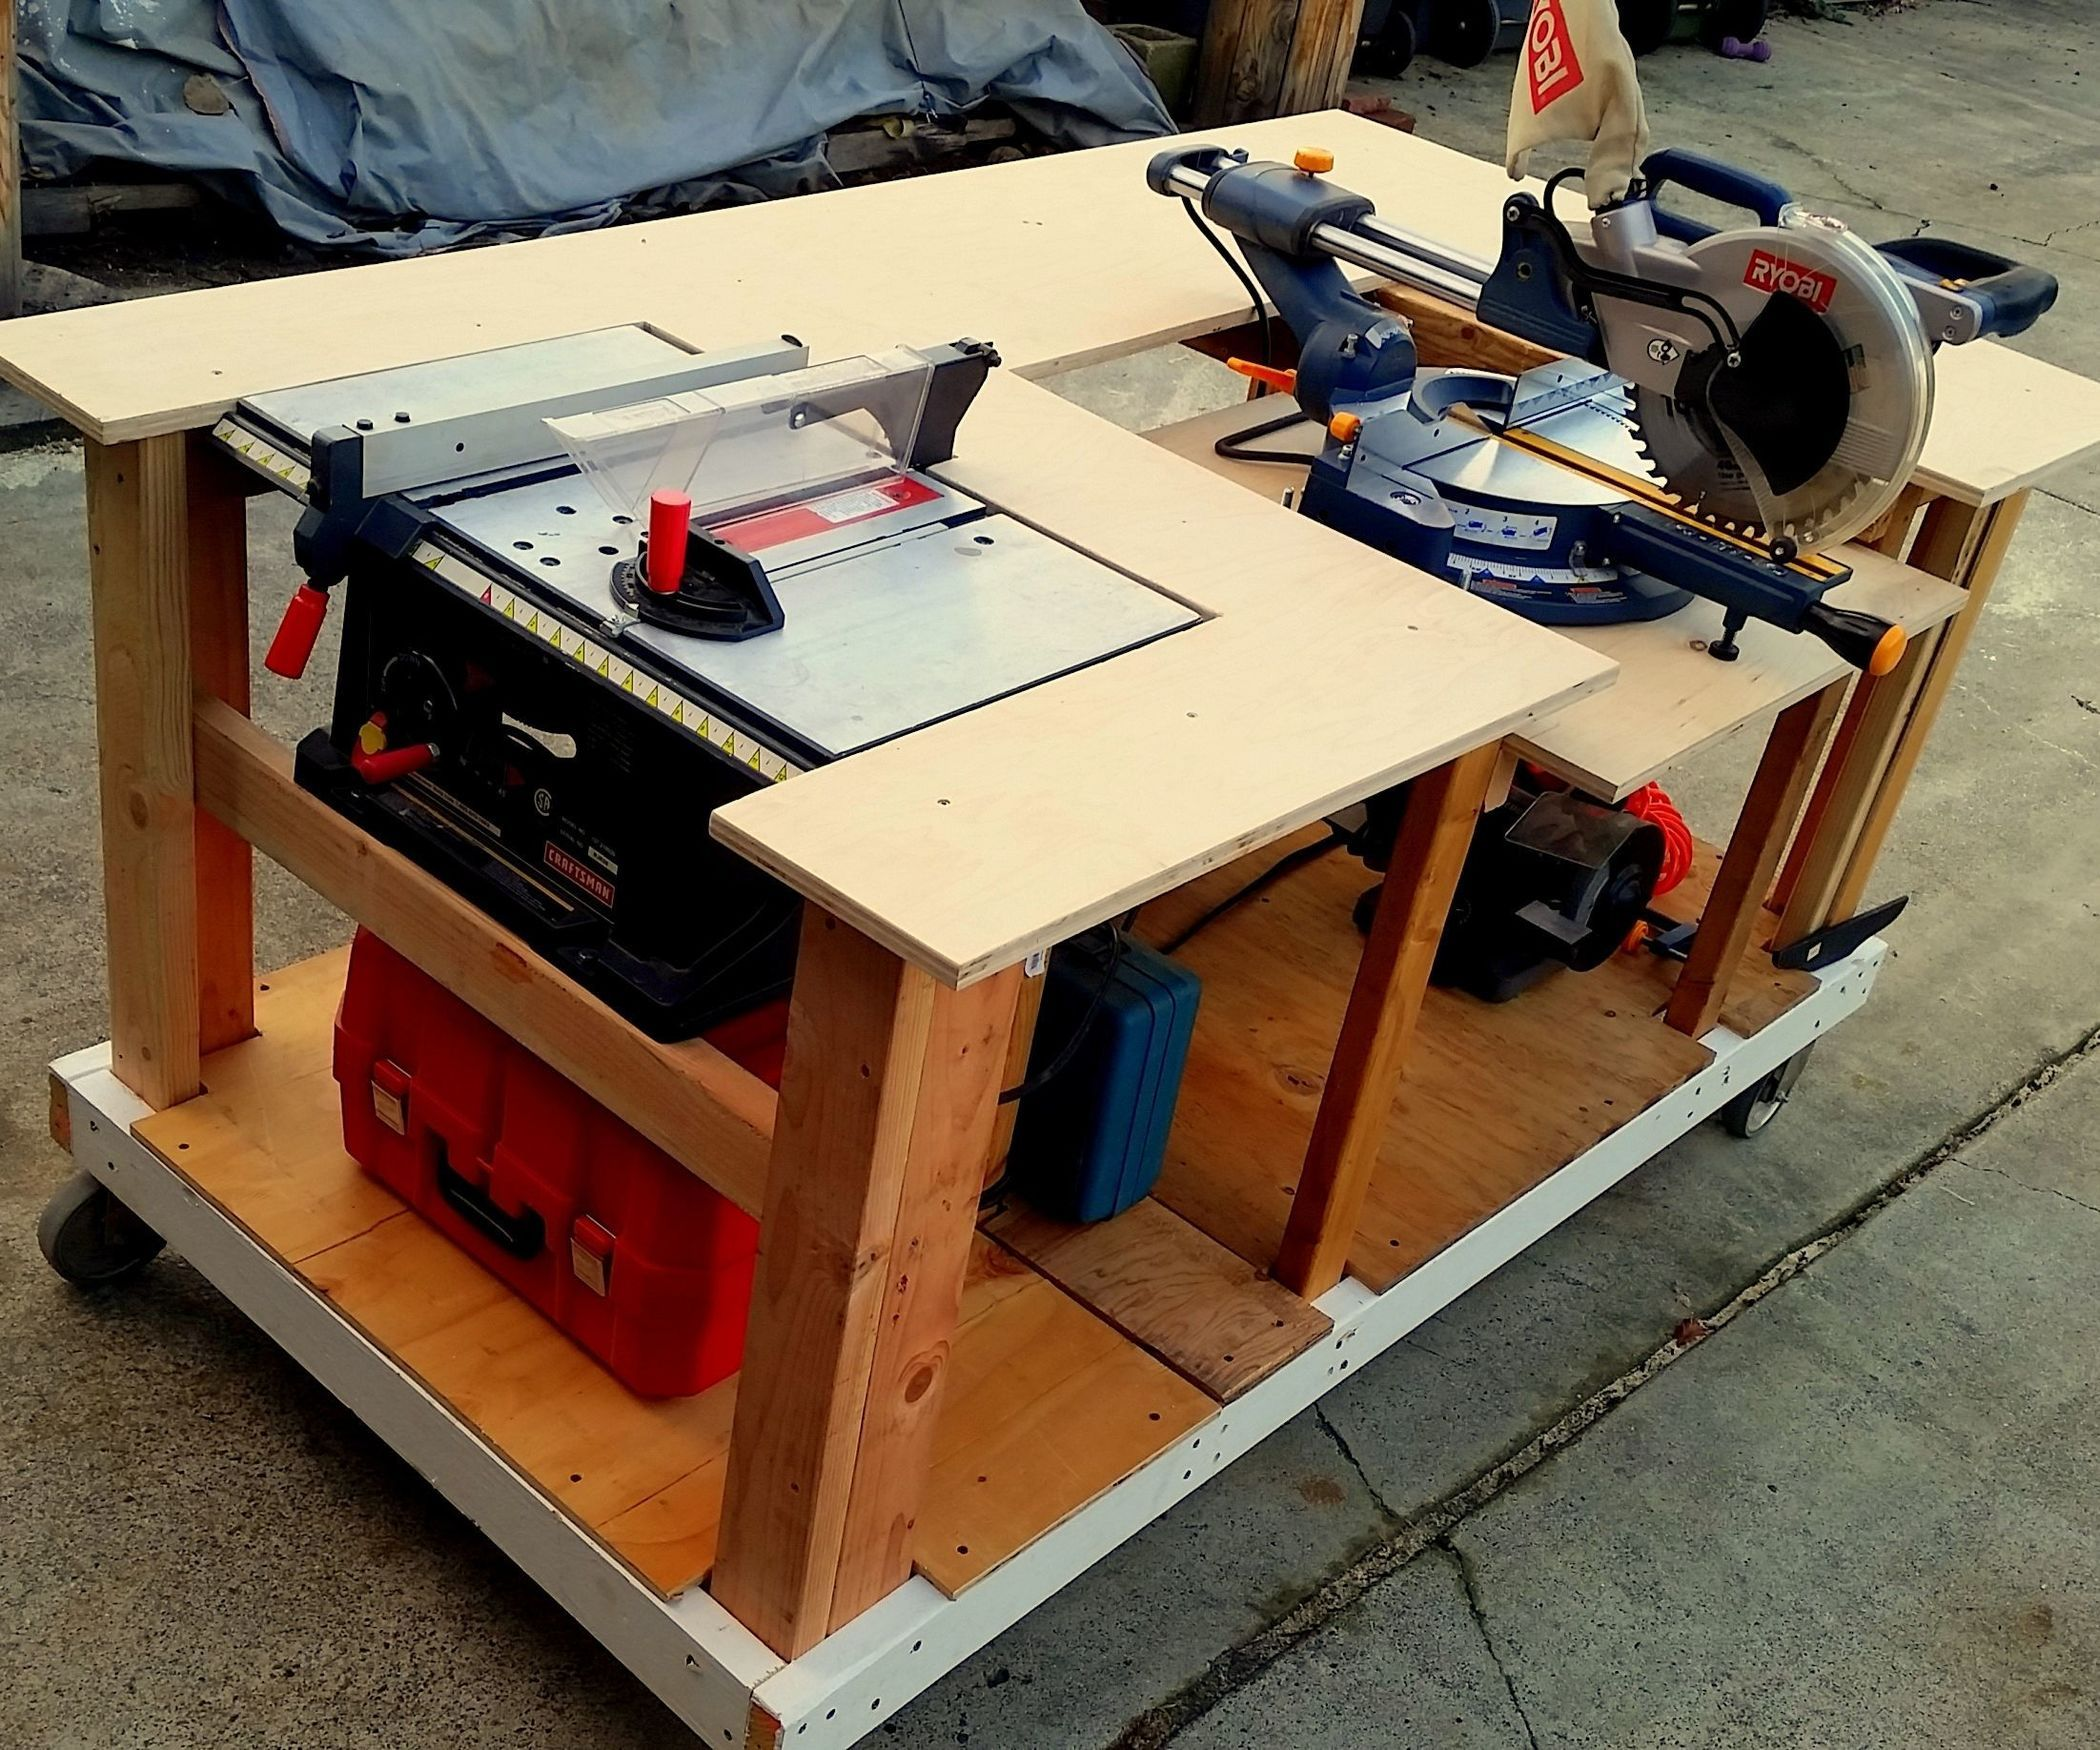 Woodworking Tool Bench Mobile Workbench With Built In Table And Miter Saws Garage